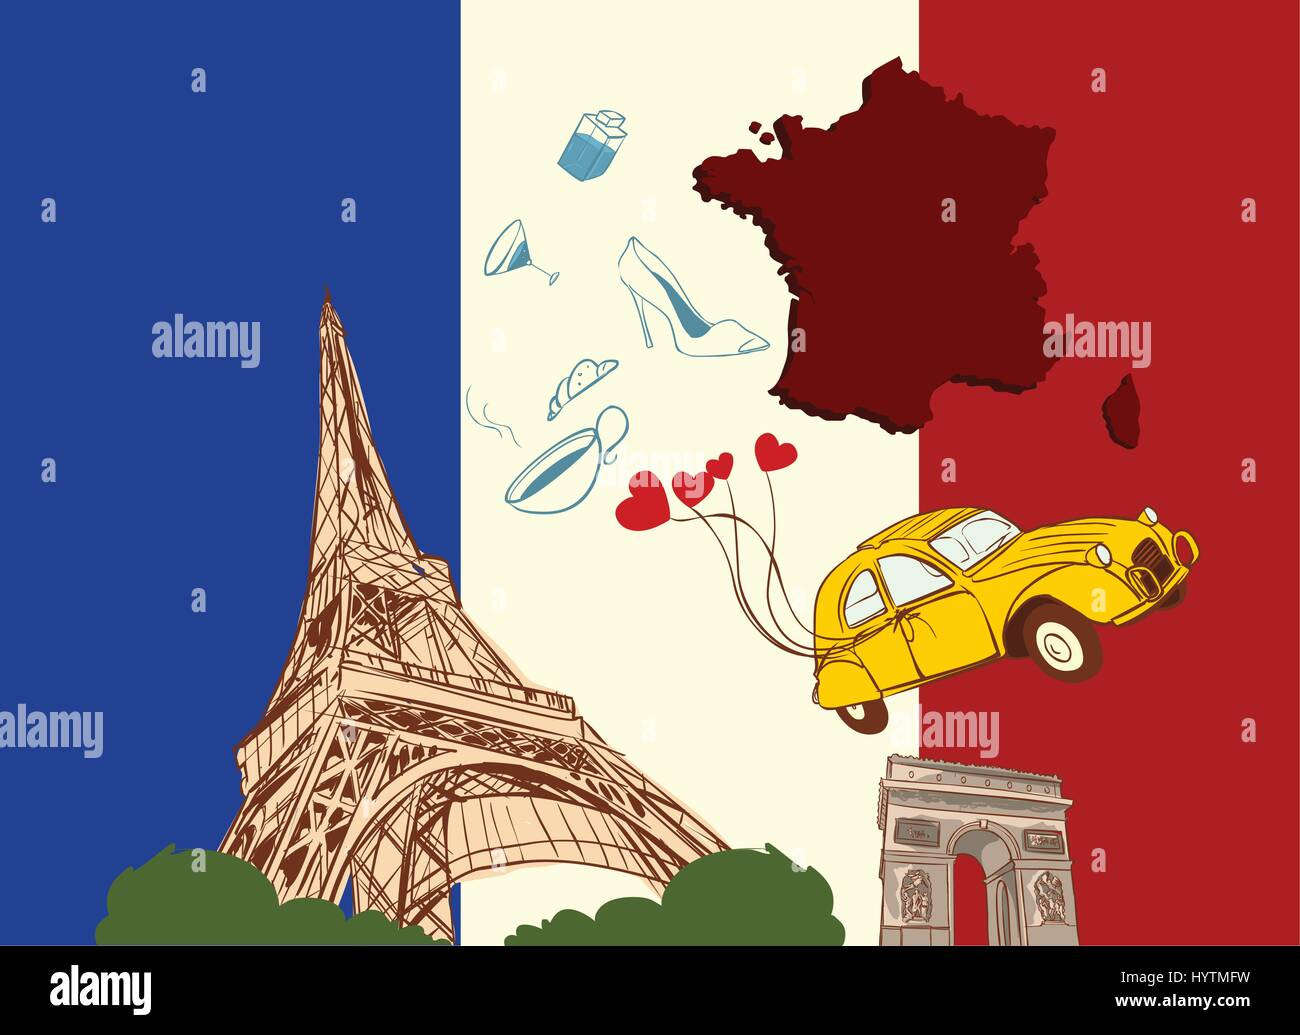 vector illustration of a france - Stock Image